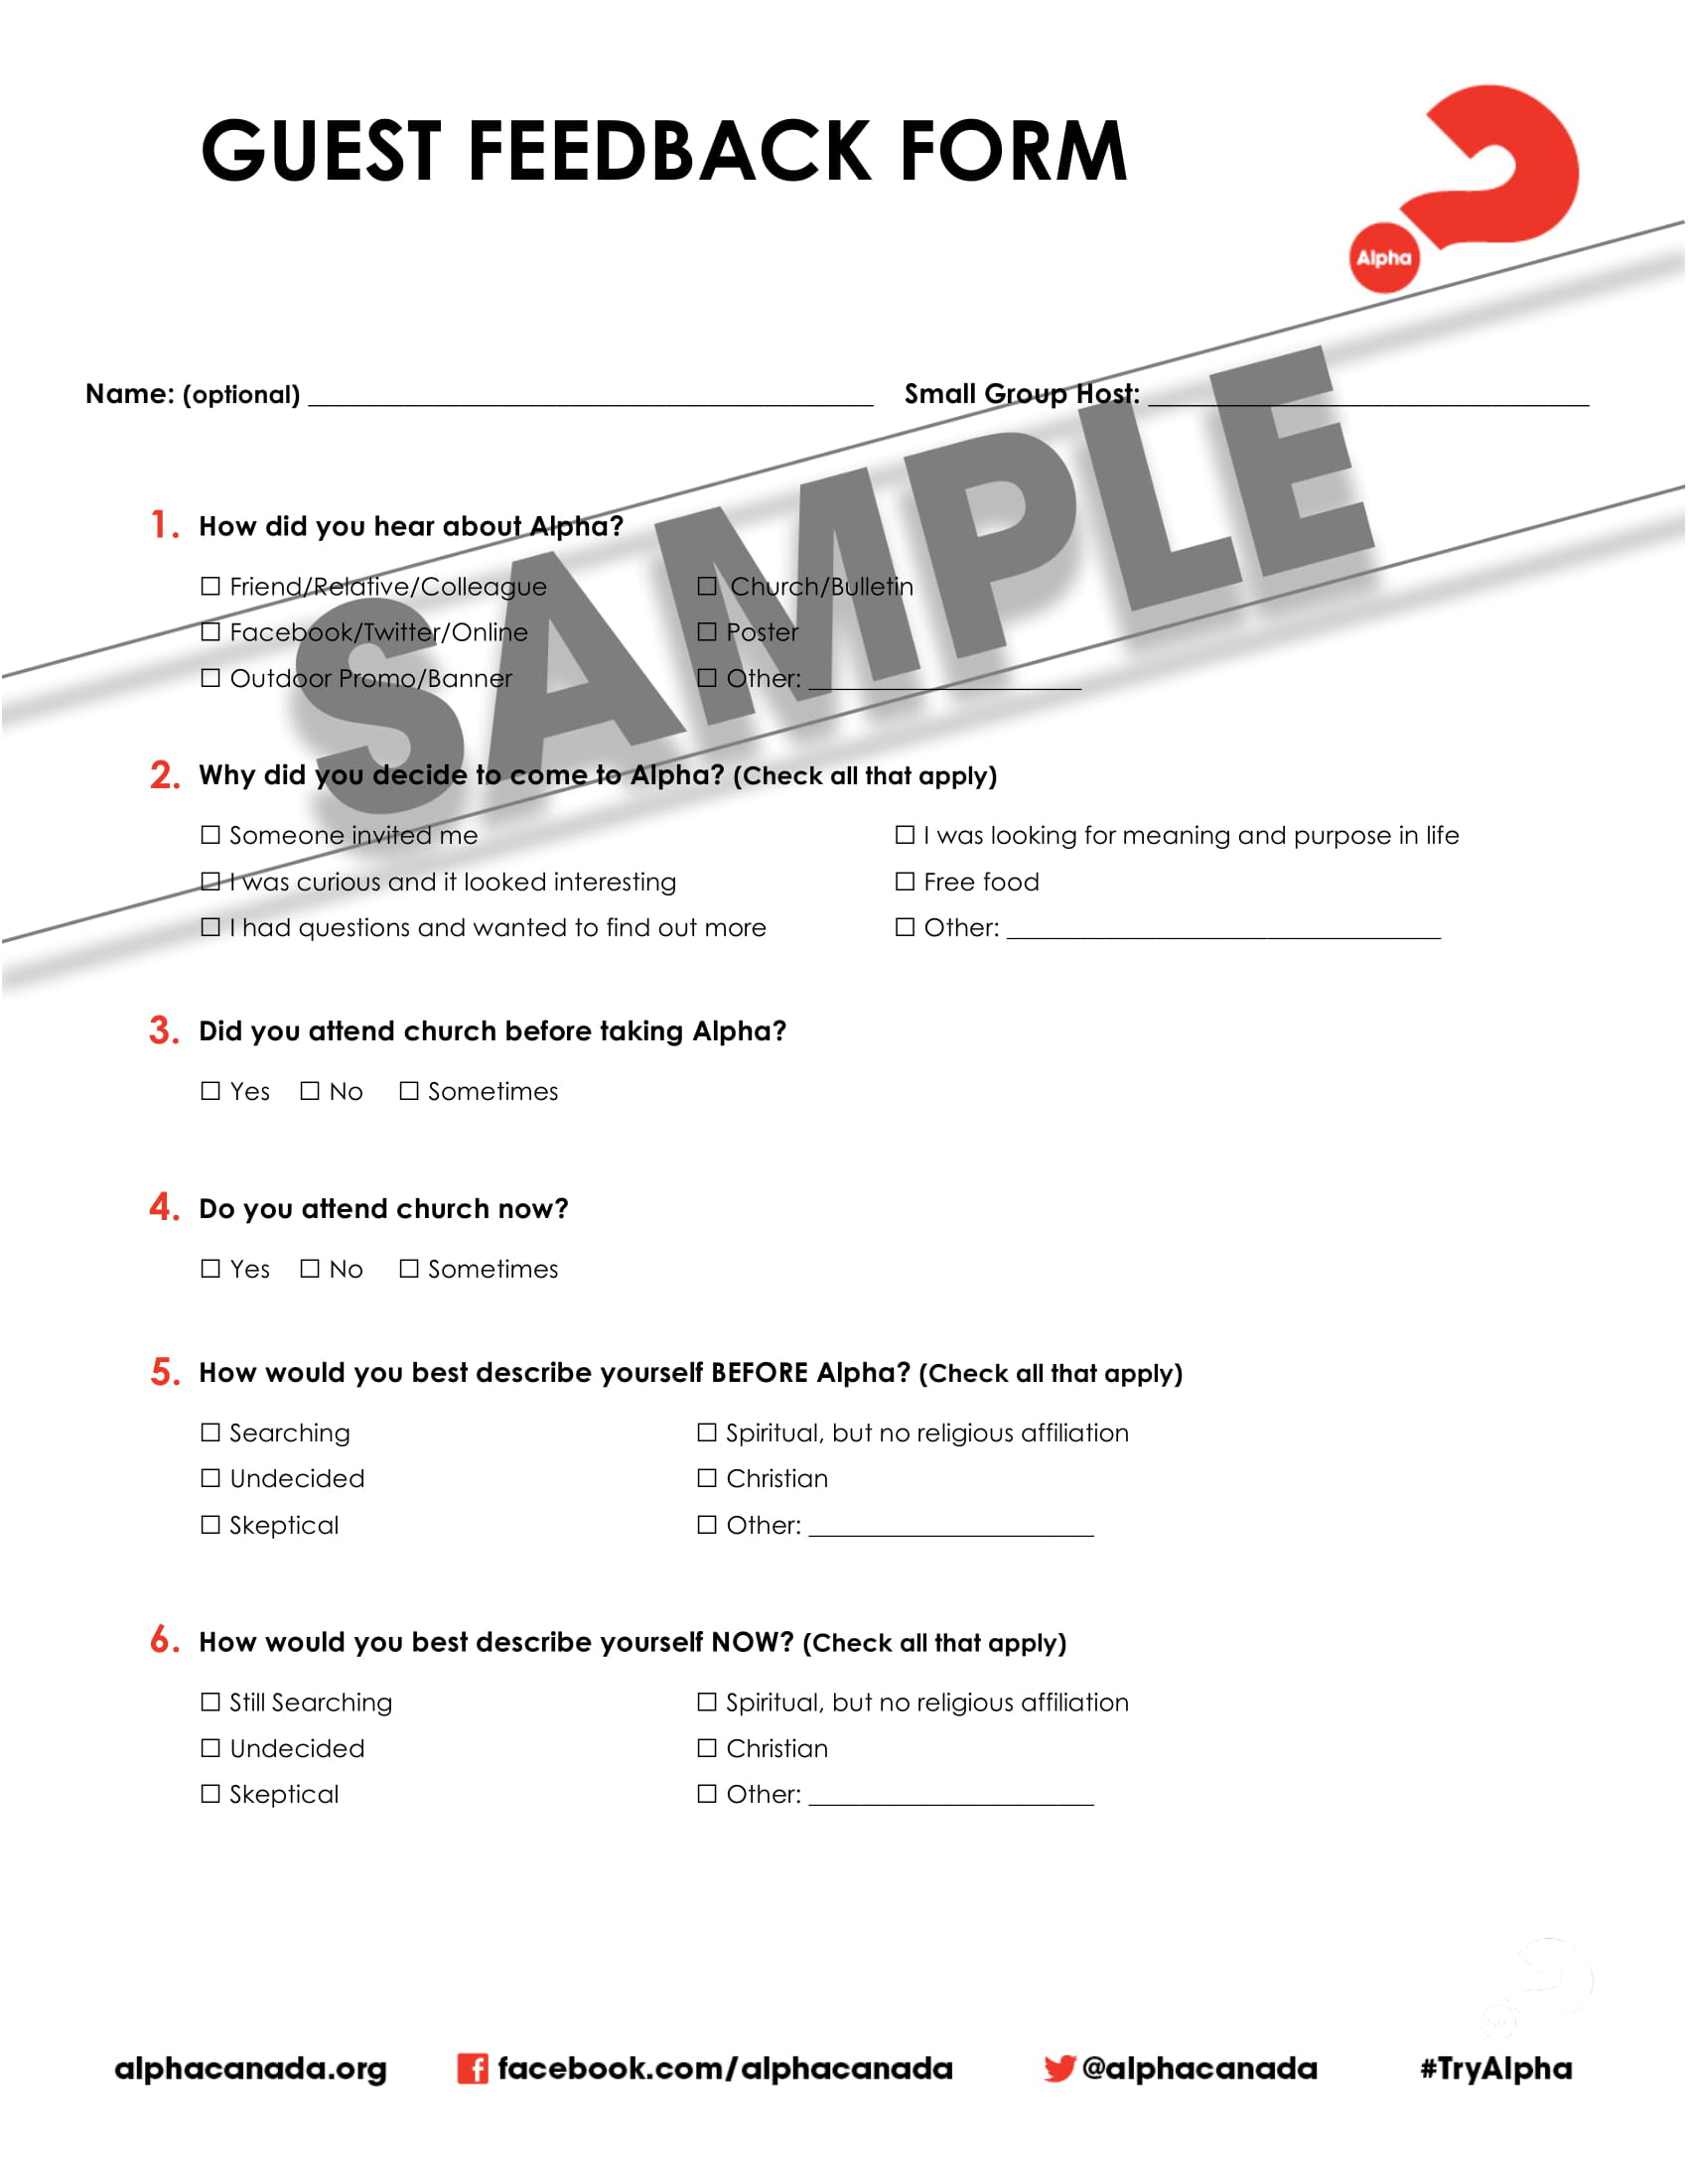 FREE 15+ Customer and Guest Feedback Forms in PDF